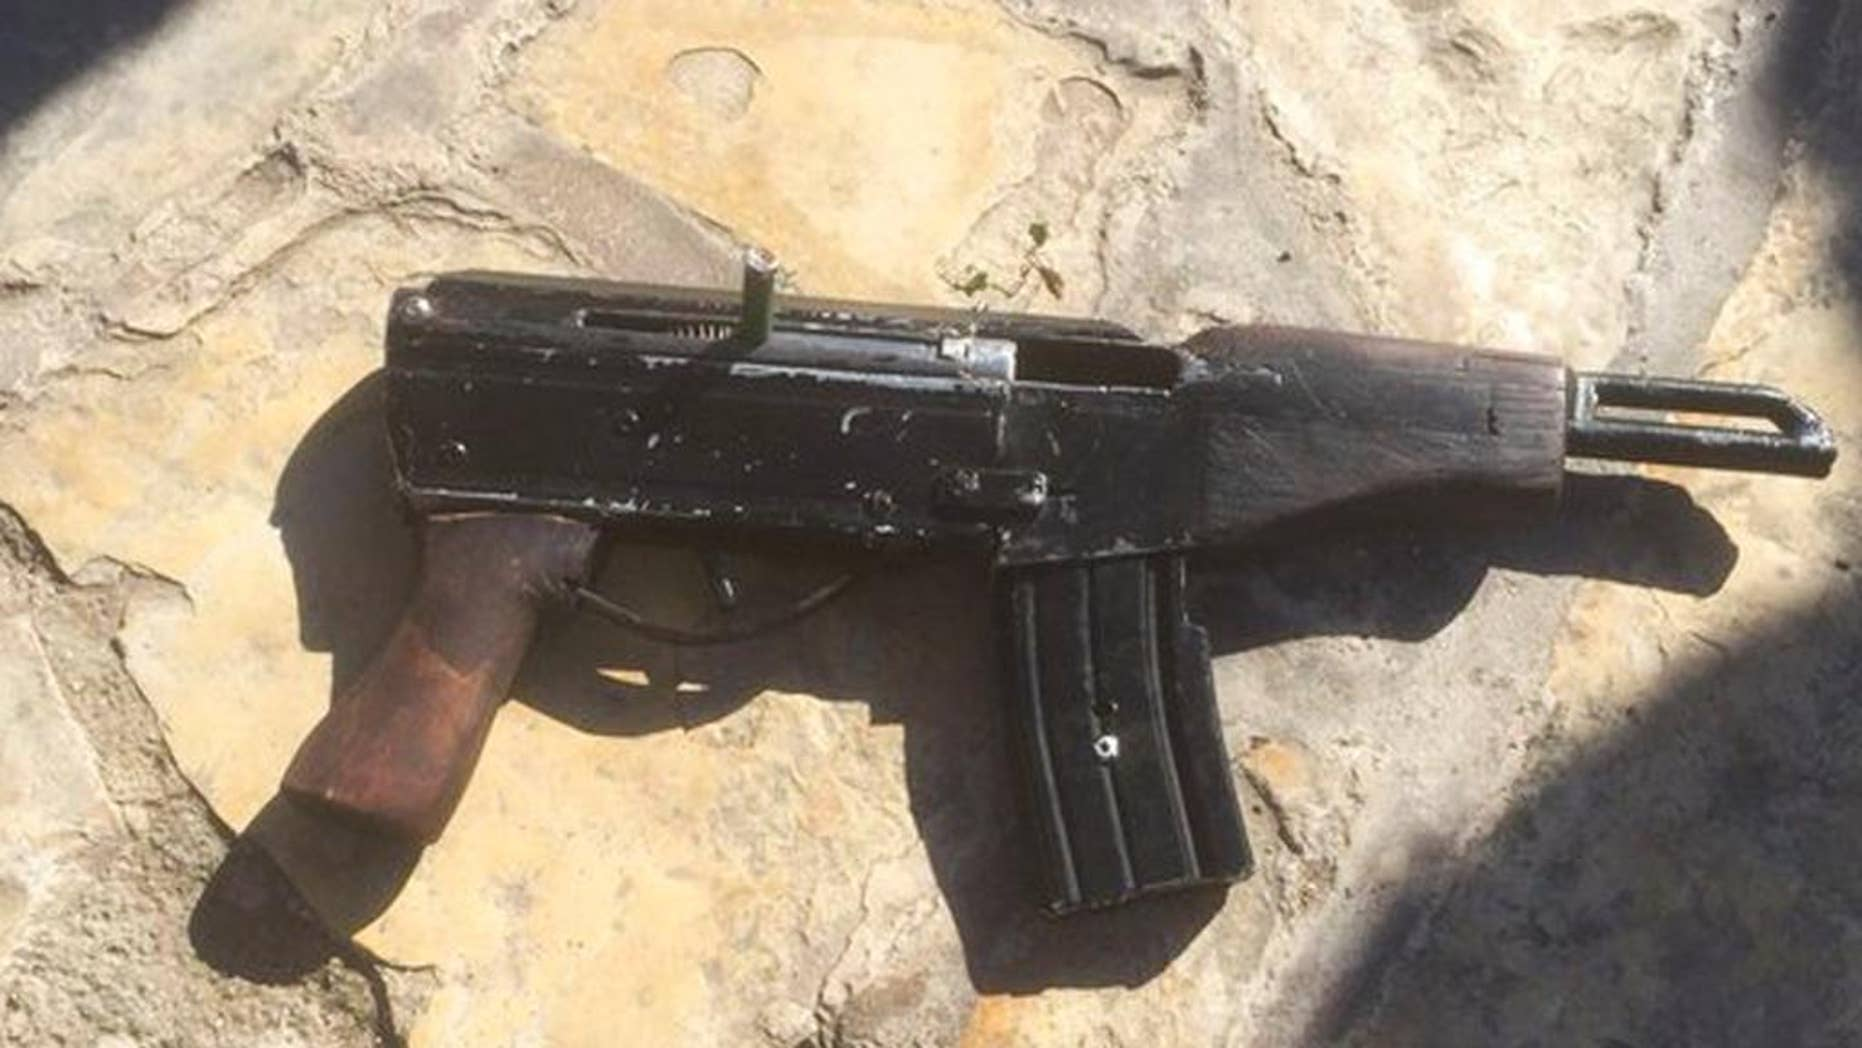 """This undated photo provided by the Israeli Police shows a handmade gun produced in the West Bank. Welded together from spare gun parts and pipes, the gun looks like a handgun but with an extended barrel and a long magazine of bullets. The weapon, known by its street name """"Carlo,"""" was used by Palestinian gunmen to kill four people and wound five others in Tel Aviv on Wednesday night as well as several other attacks since the current round of violence erupted in September. (Israeli Police via AP)"""